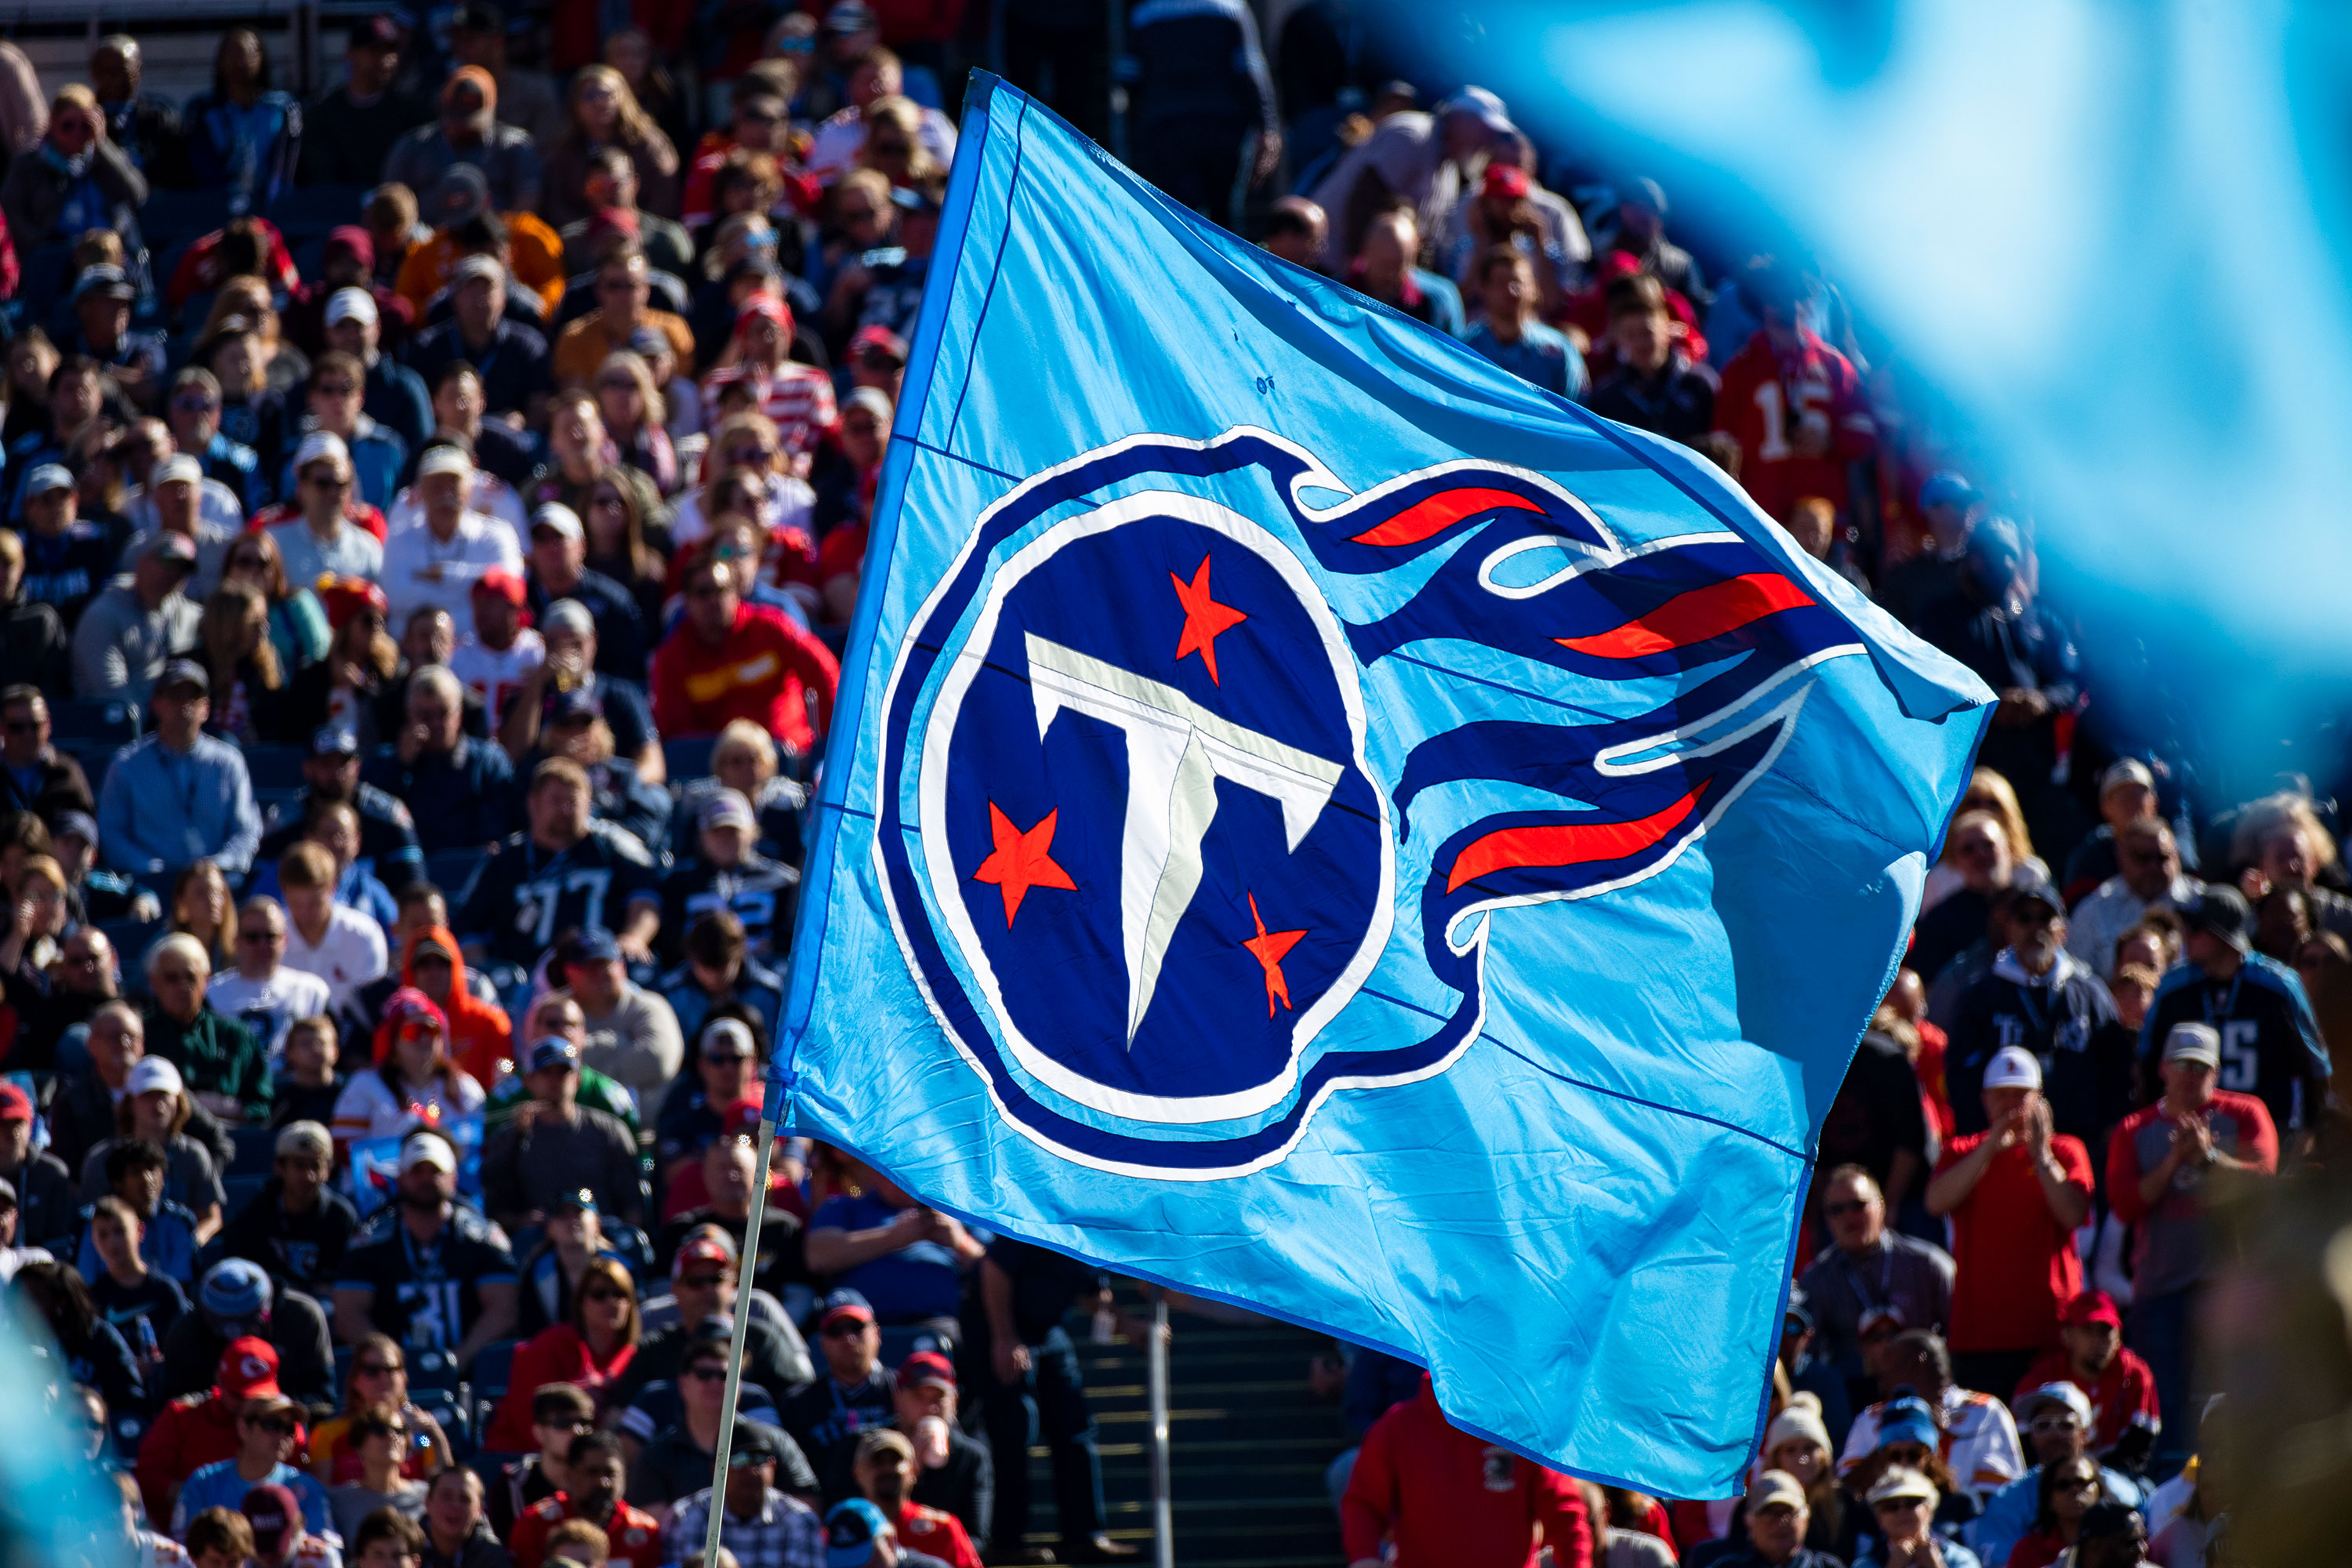 The Tennessee Titans flag is seen during a game in November 2019 in Nashville, Tennessee.